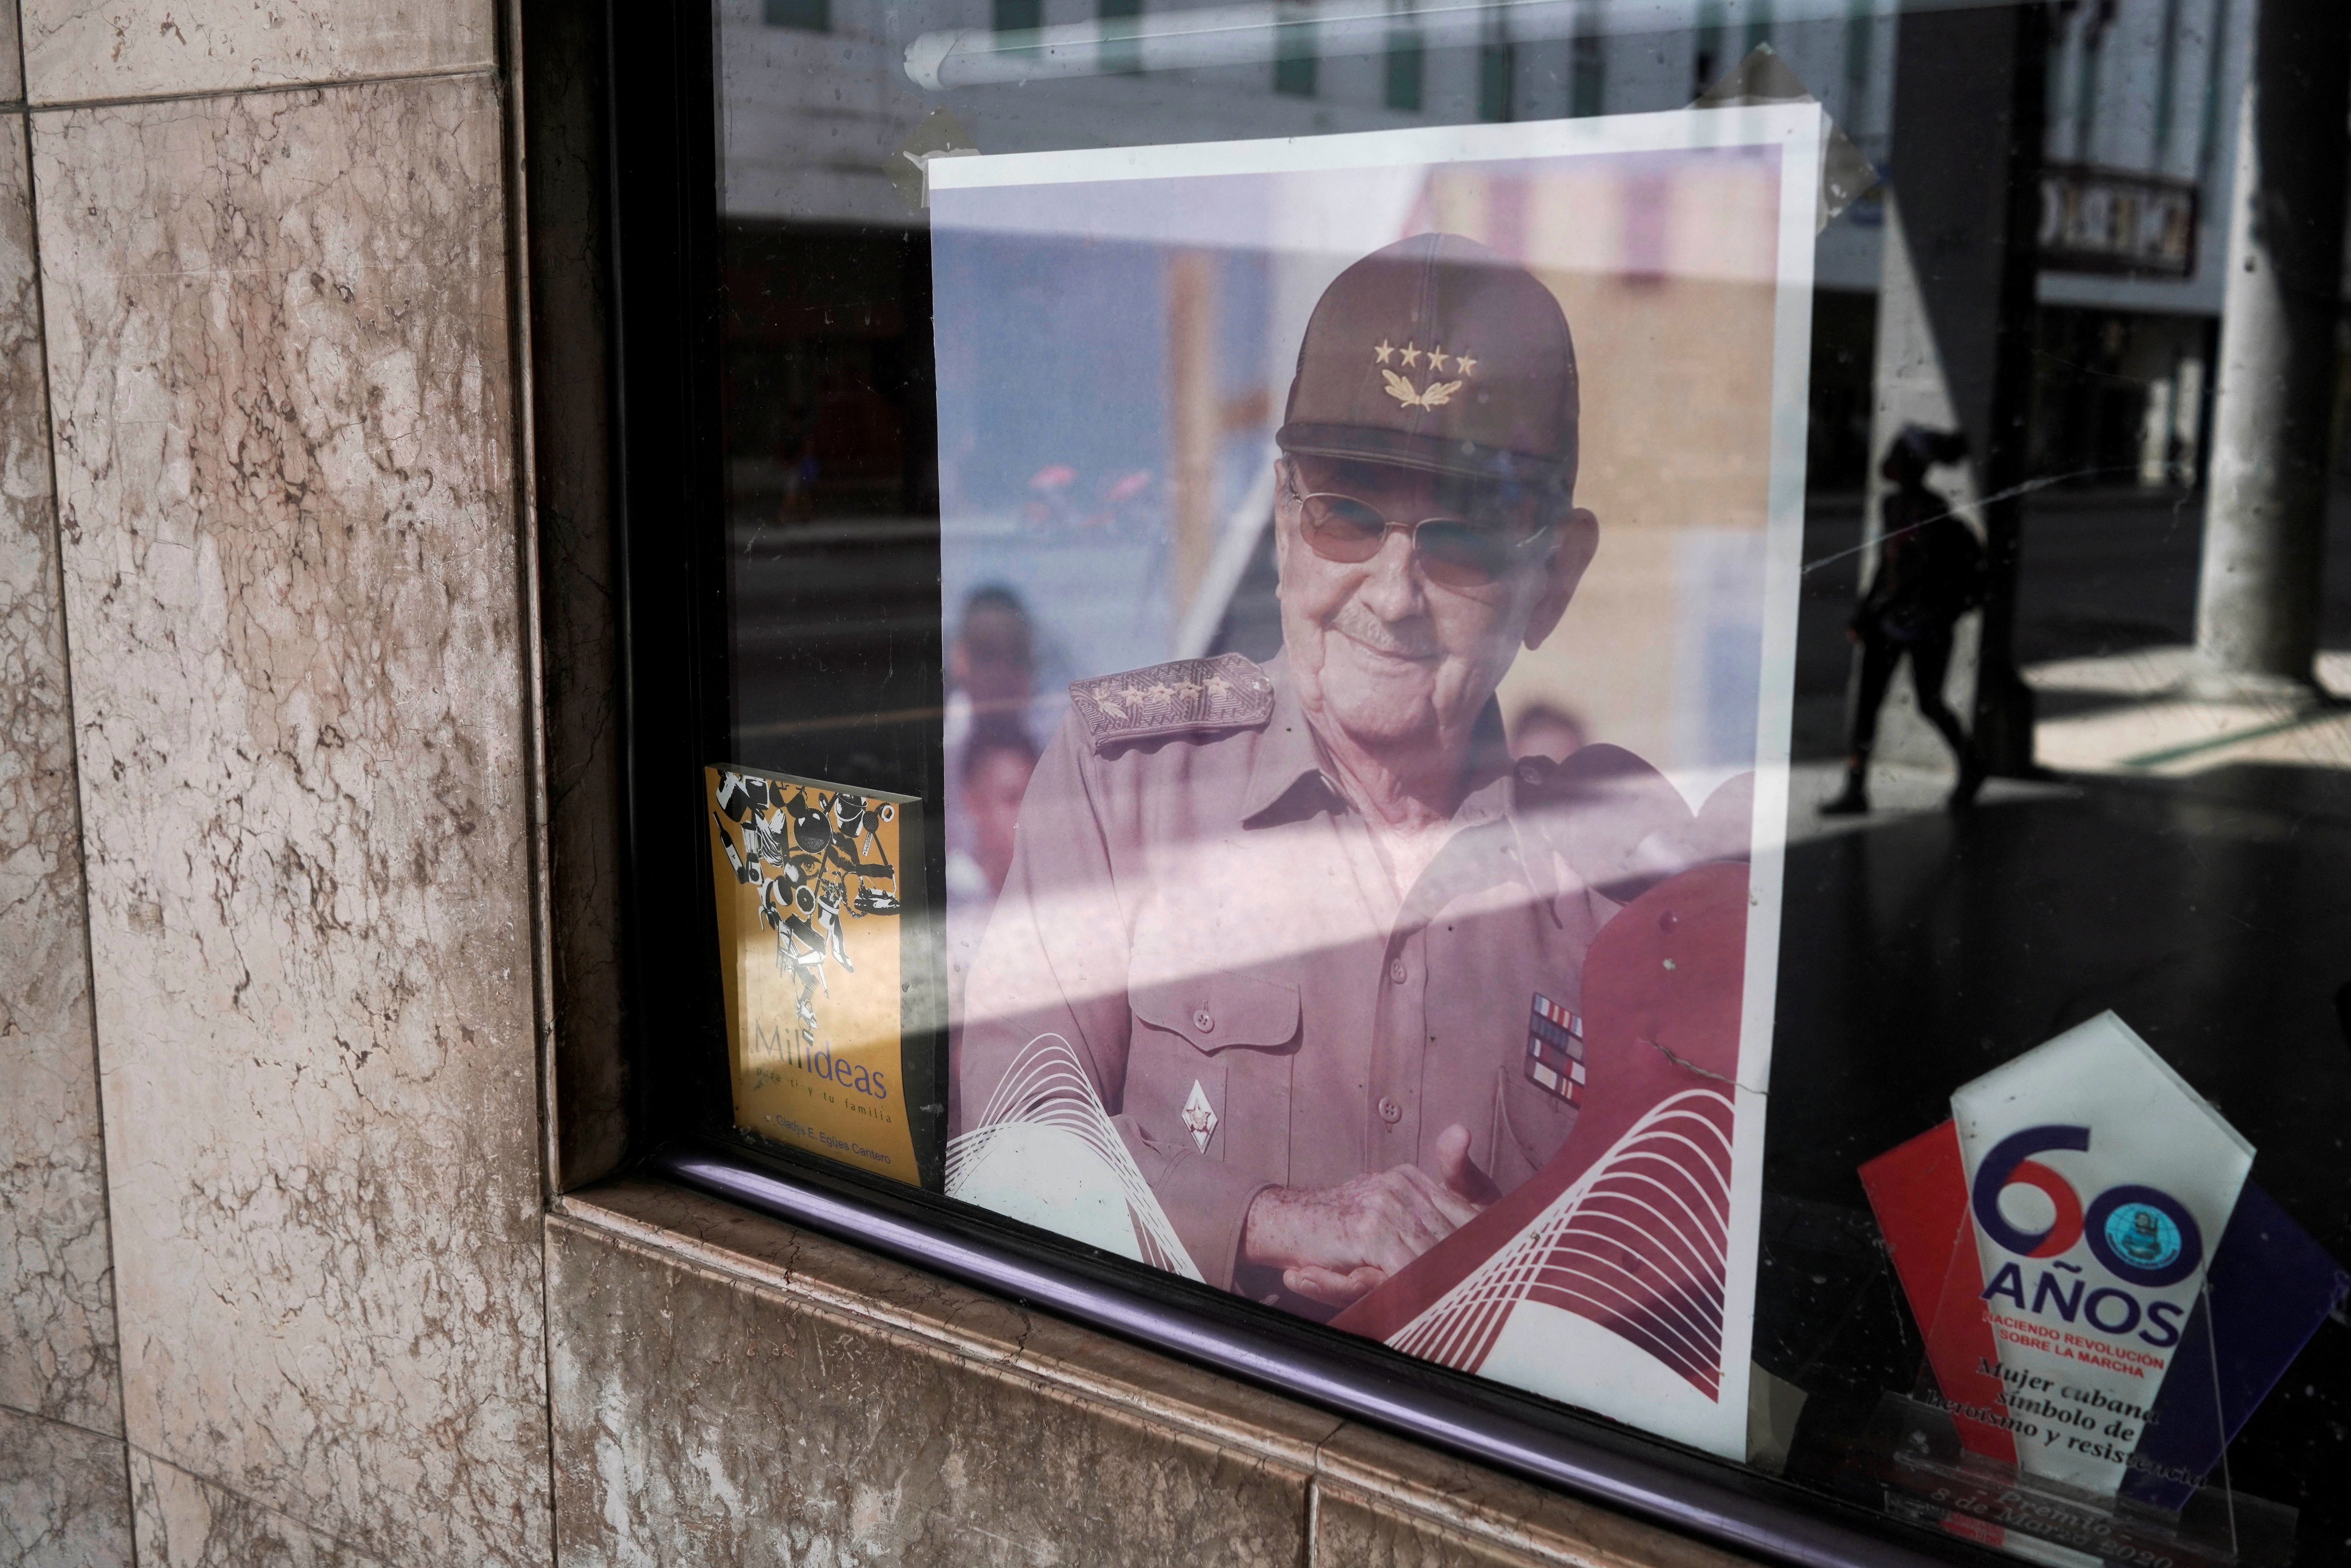 A picture of former Cuban President Raul Castro is displayed in the window of a state building in Havana, Cuba, April 11, 2021. Picture taken April 11, 2021. REUTERS/Alexandre Meneghini - RC26VM9QWV9Y